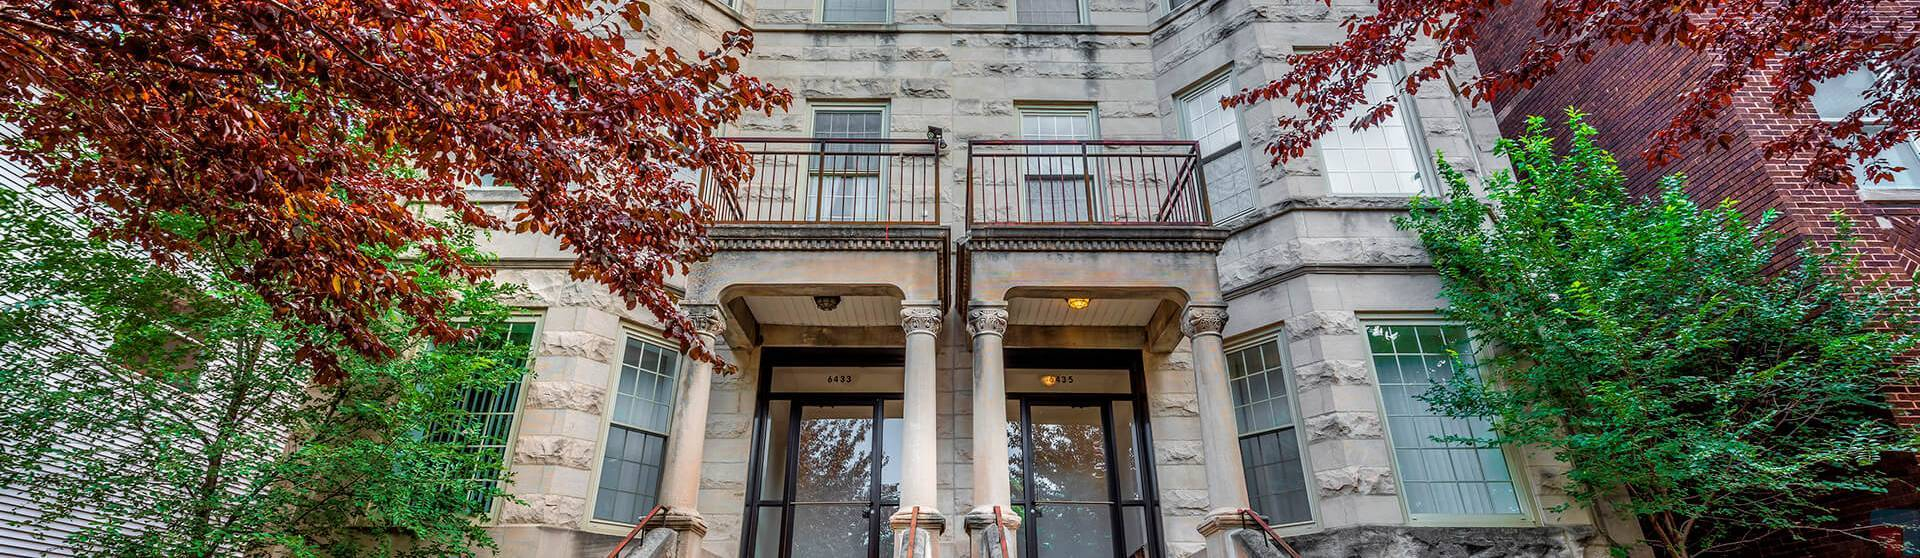 6433 South Kenwood Avenue GN, Chicago, Illinois 60, Illinois, 1 Bedroom Bedrooms, ,1 BathroomBathrooms,Apartment,Vacation Rental,6433 South Kenwood Avenue GN, Chicago, Illinois 60,1214